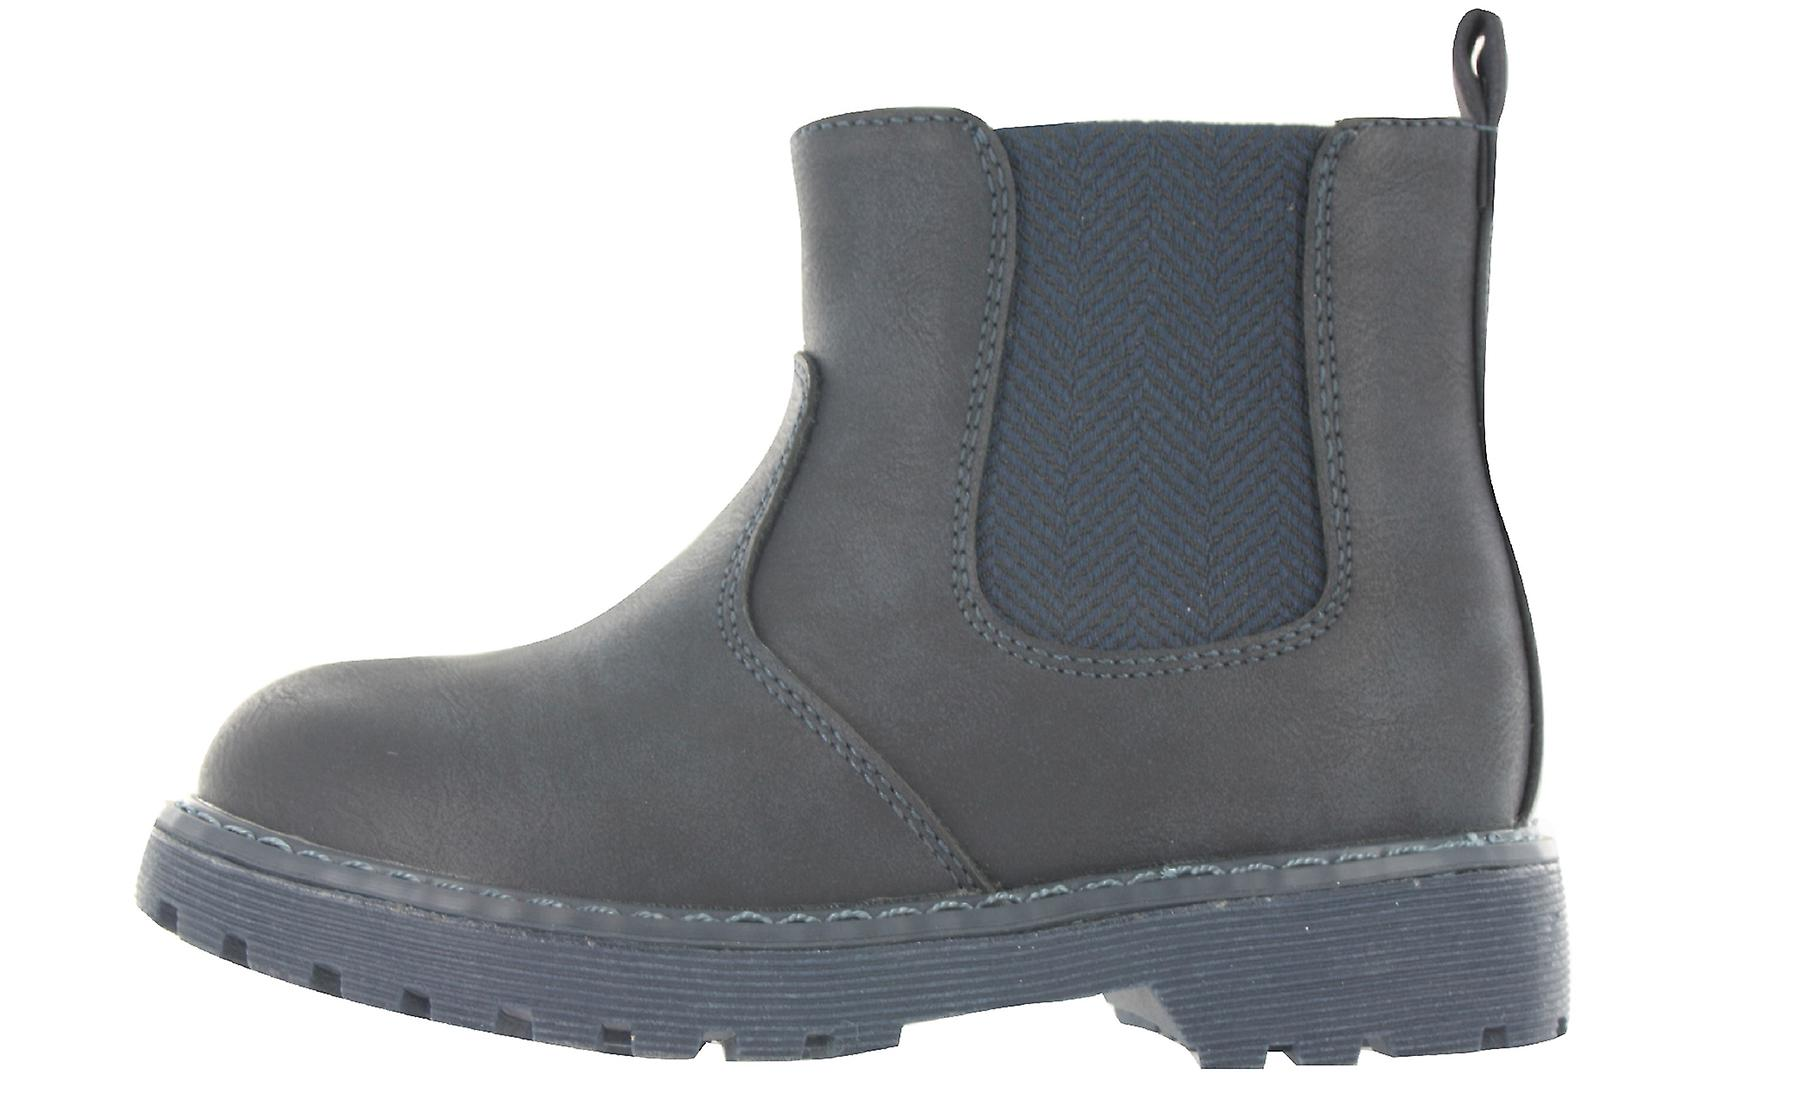 Boys Buckle My Shoe Black Ankle Boots Back to School Easy Fit Various Sizes